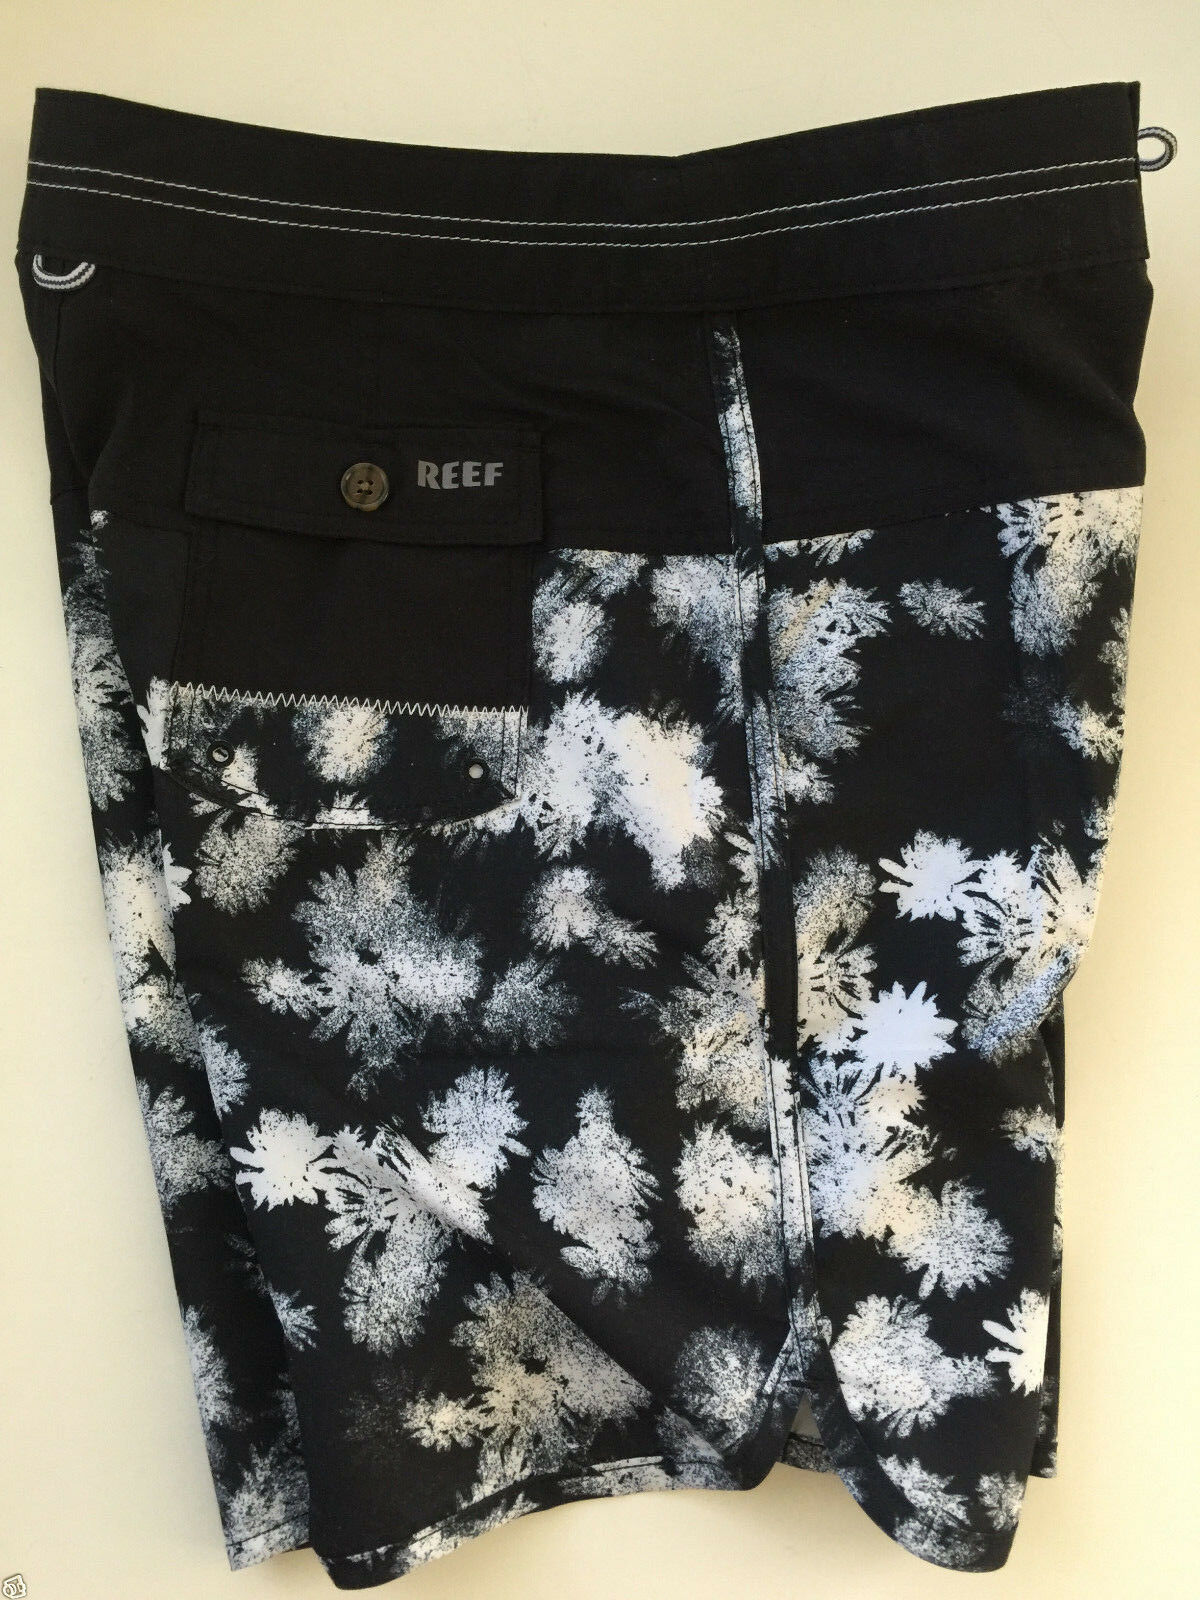 REEF  SWIMTRUNKS BOARD SHORTS 19